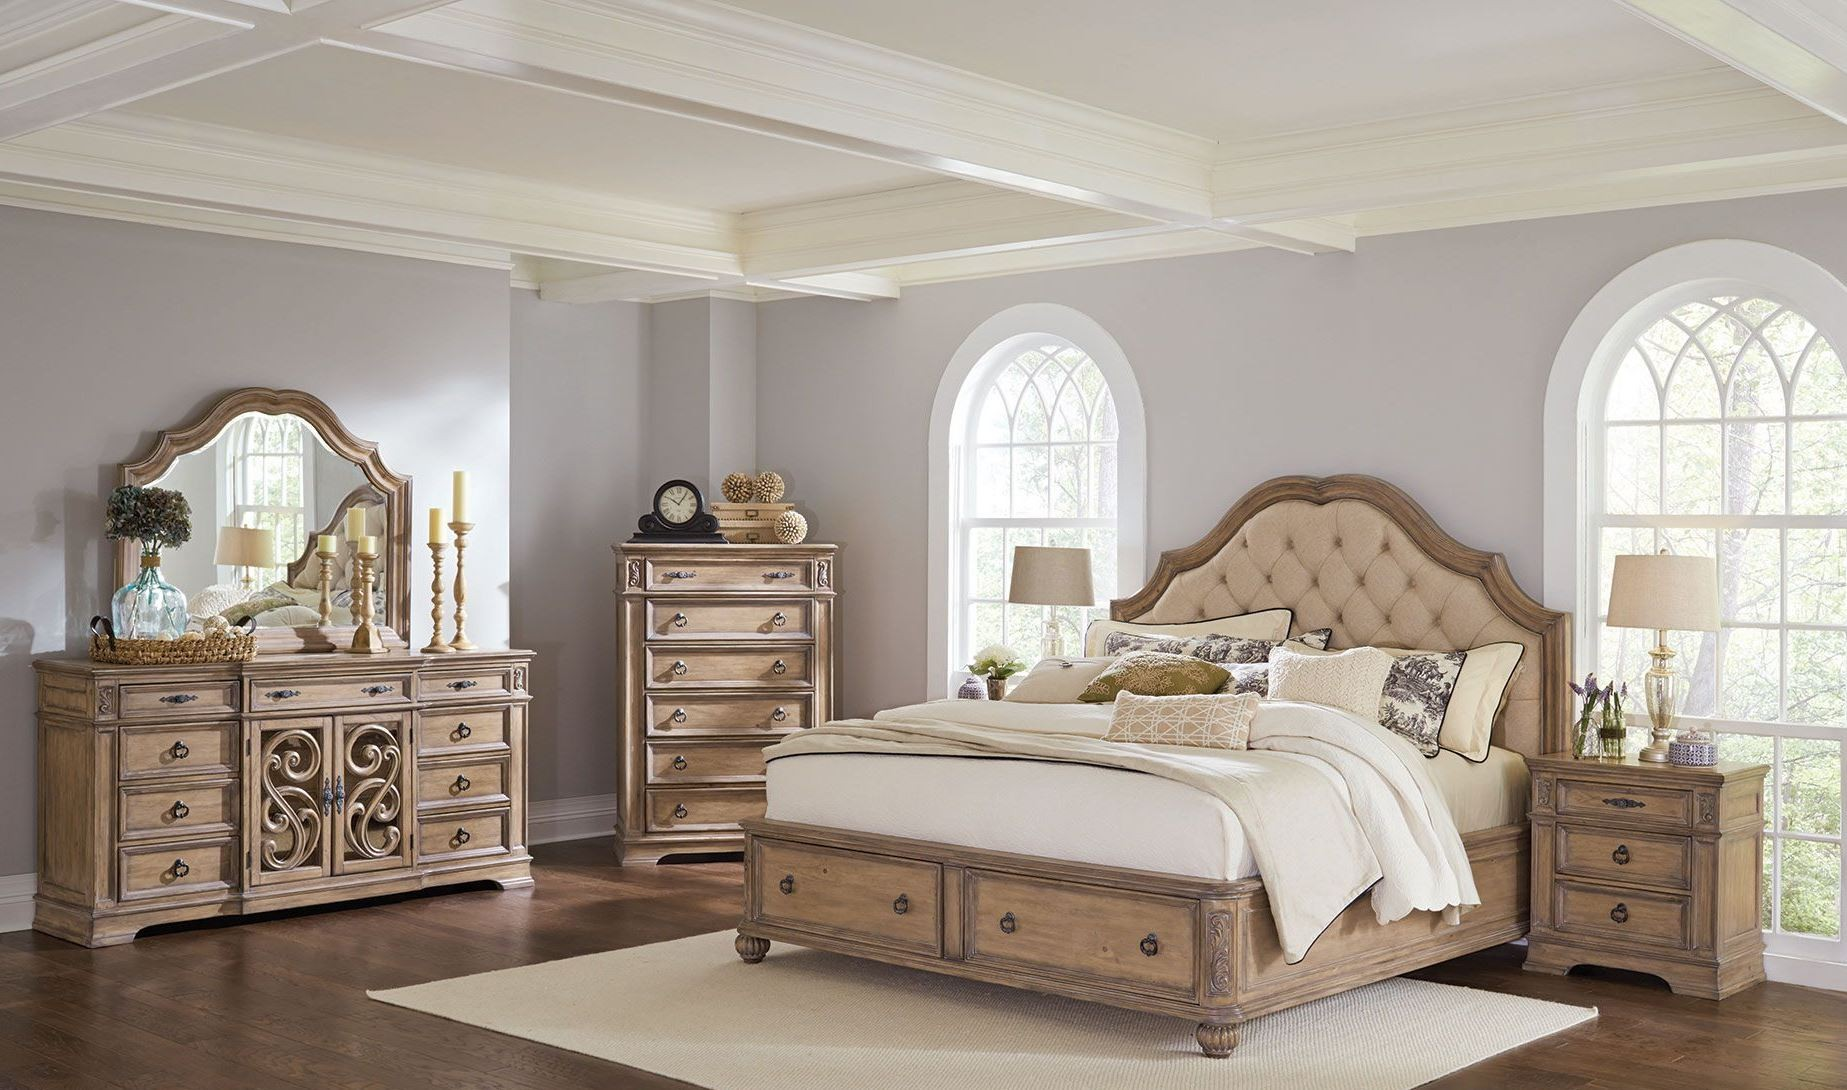 ilana antique linen panel storage bedroom set from coaster coleman furniture - Antique Bedroom Sets